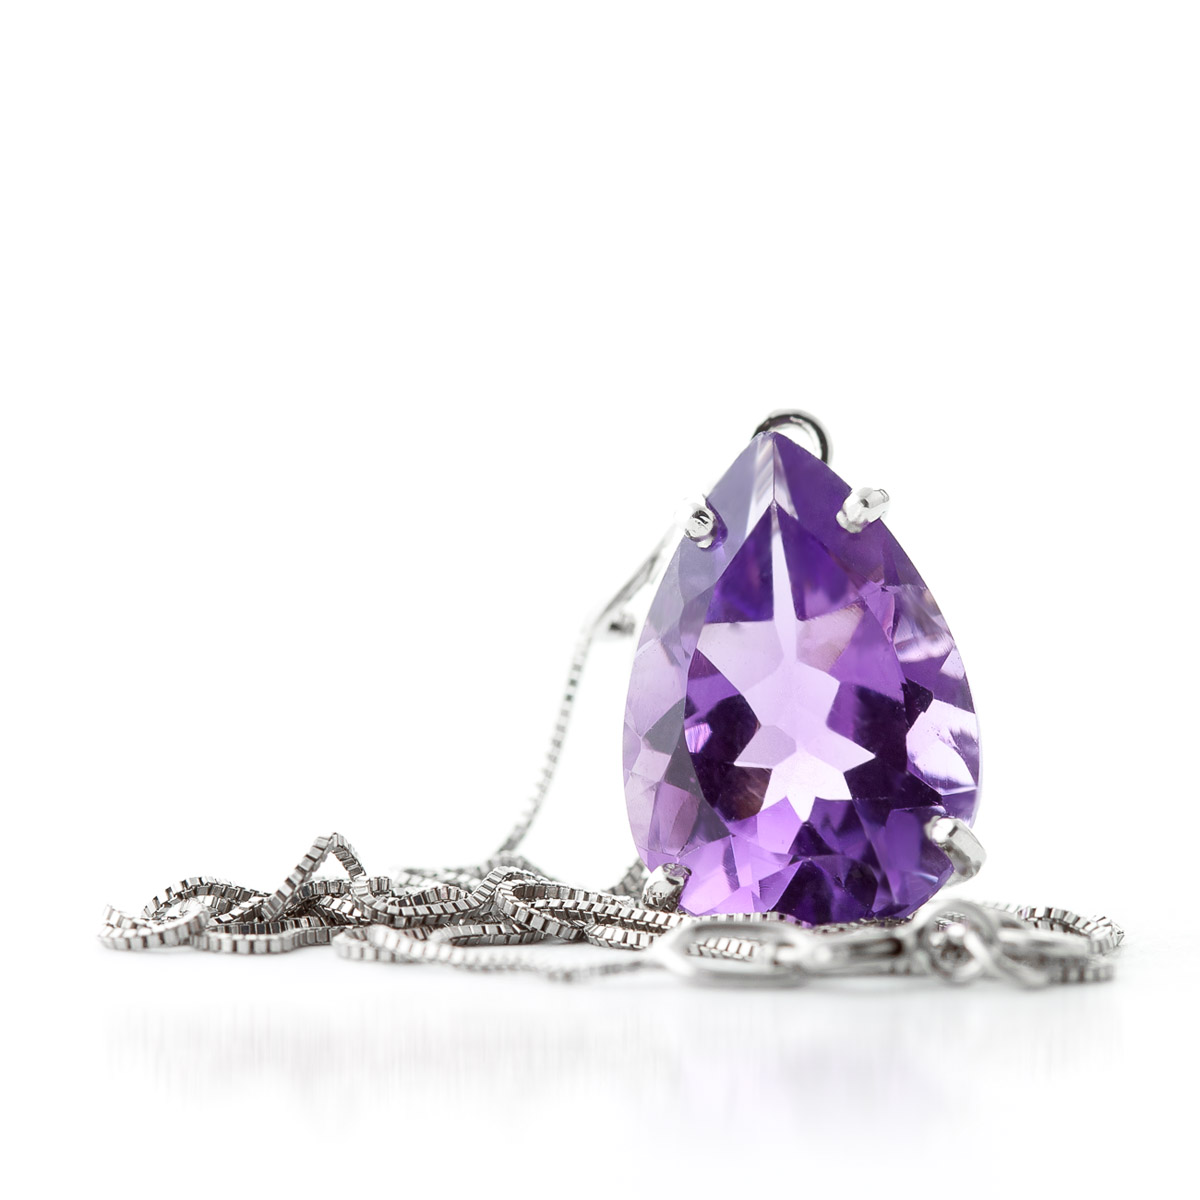 Pear cut amethyst pendant necklace 50ct in 9ct white gold 2292w pear cut amethyst pendant necklace 50ct in 9ct white gold mozeypictures Image collections